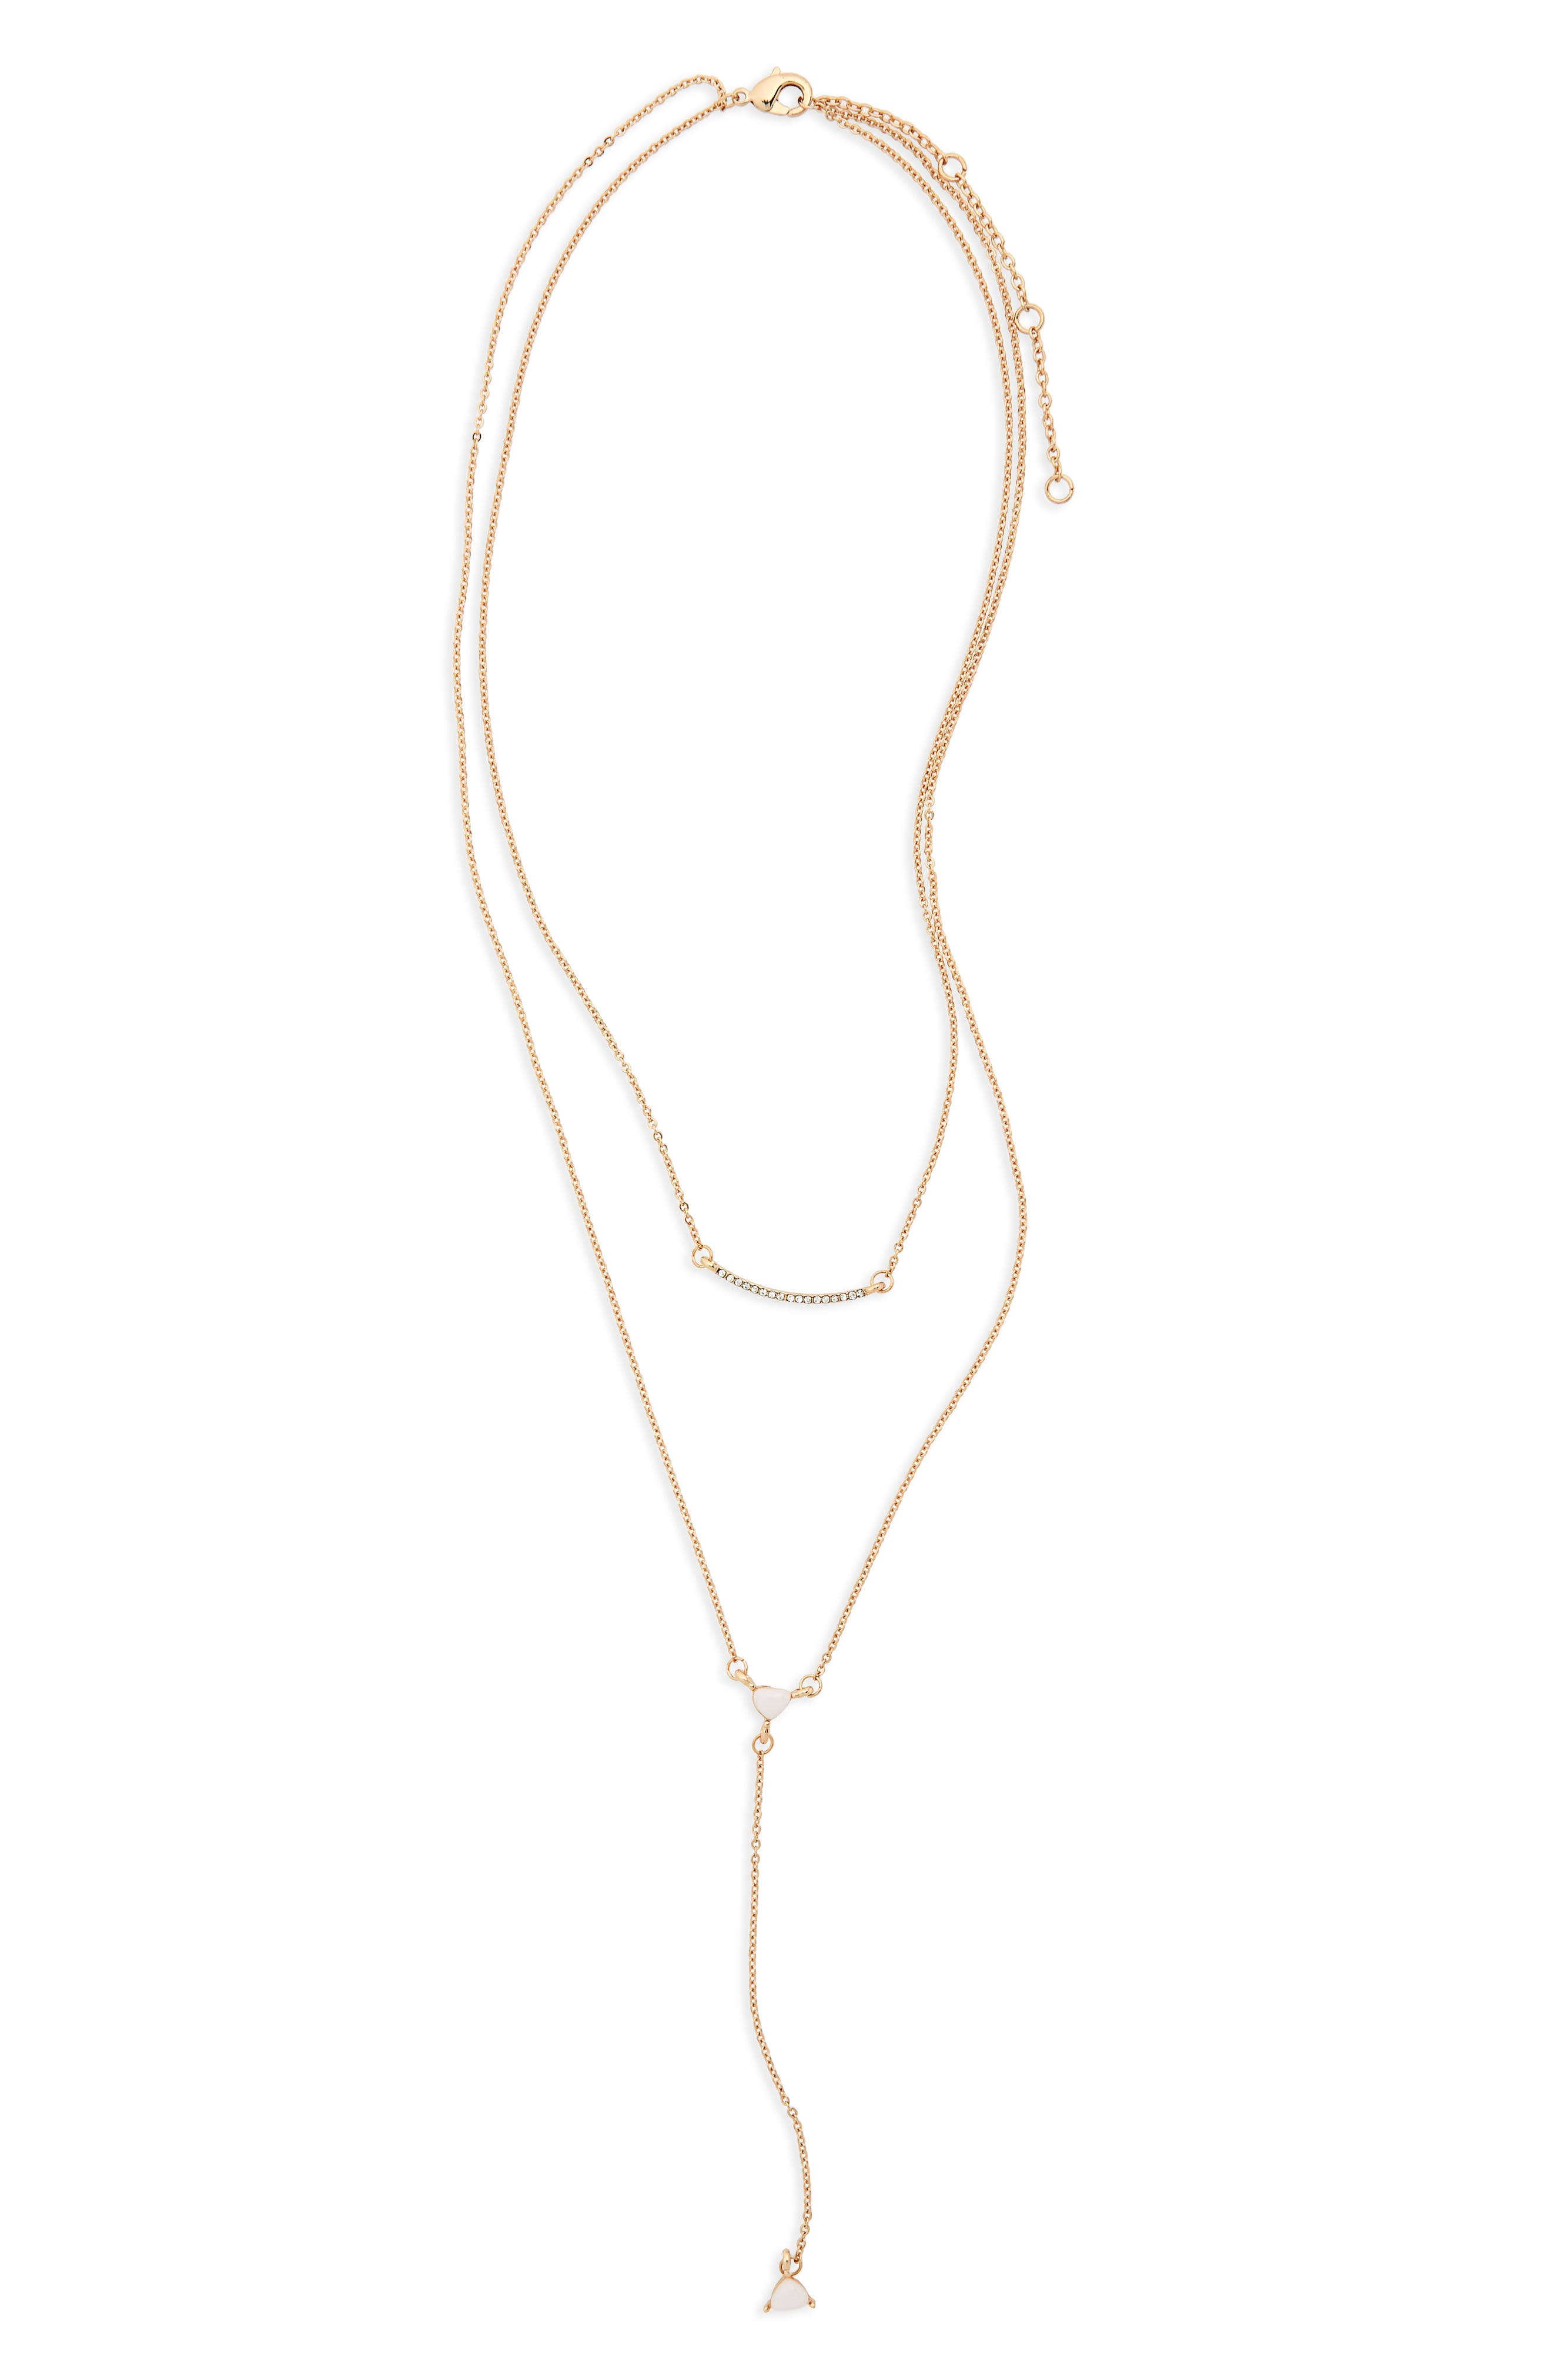 Stone Drop Pendant Necklace,                         Main,                         color, Gold/ White/ Crystal